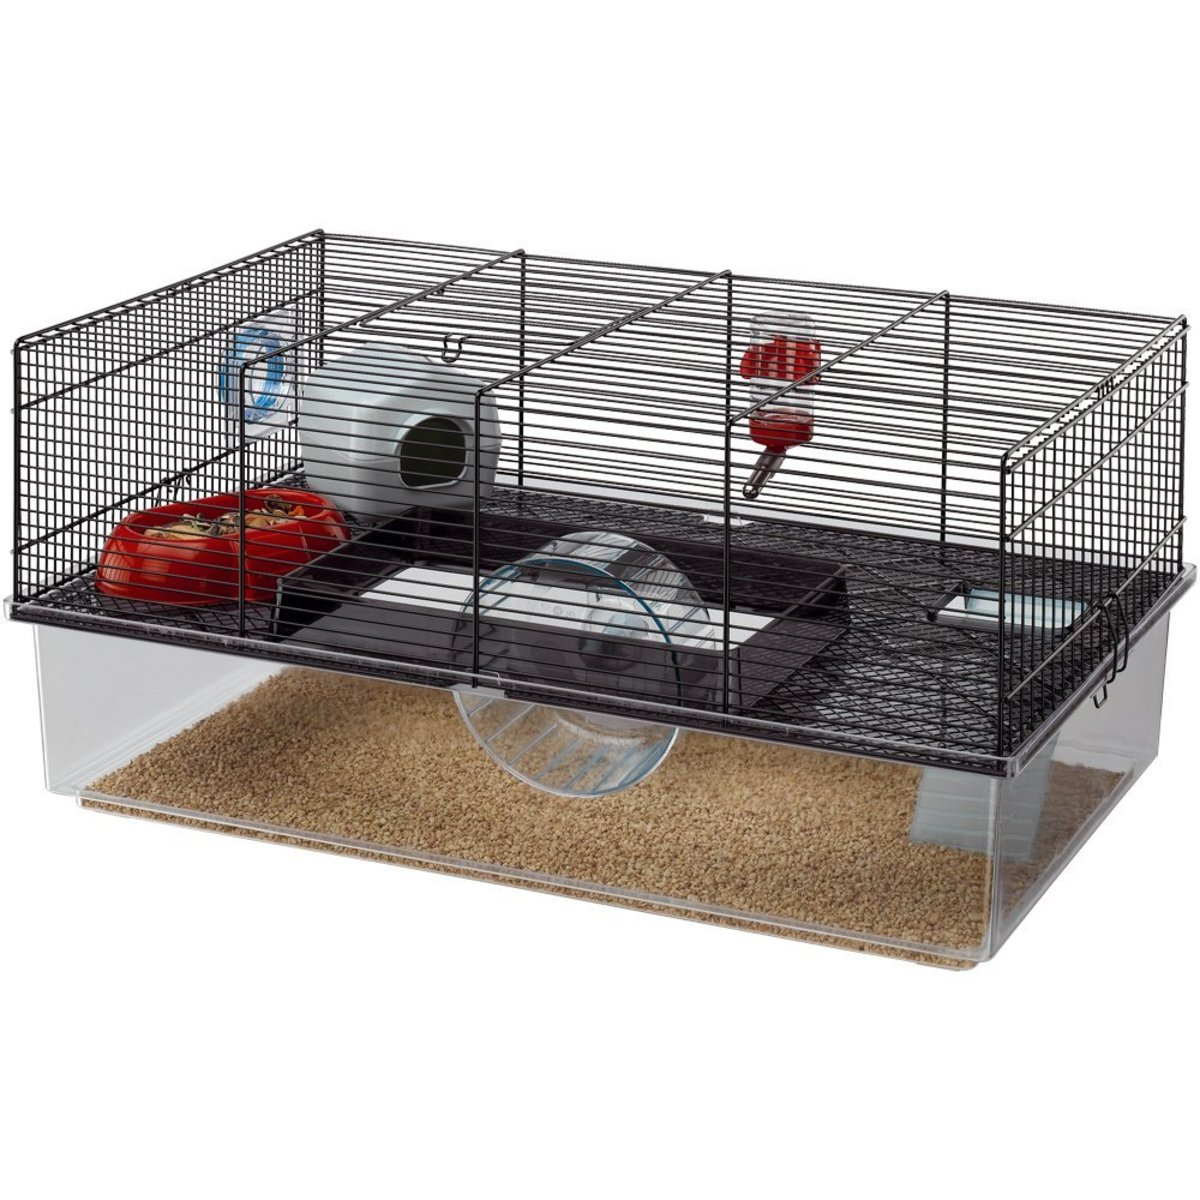 Another brilliant example of a sound, large hamster cage giving lots of variety and options for digging and nesting. Suitable for all types of hamster.